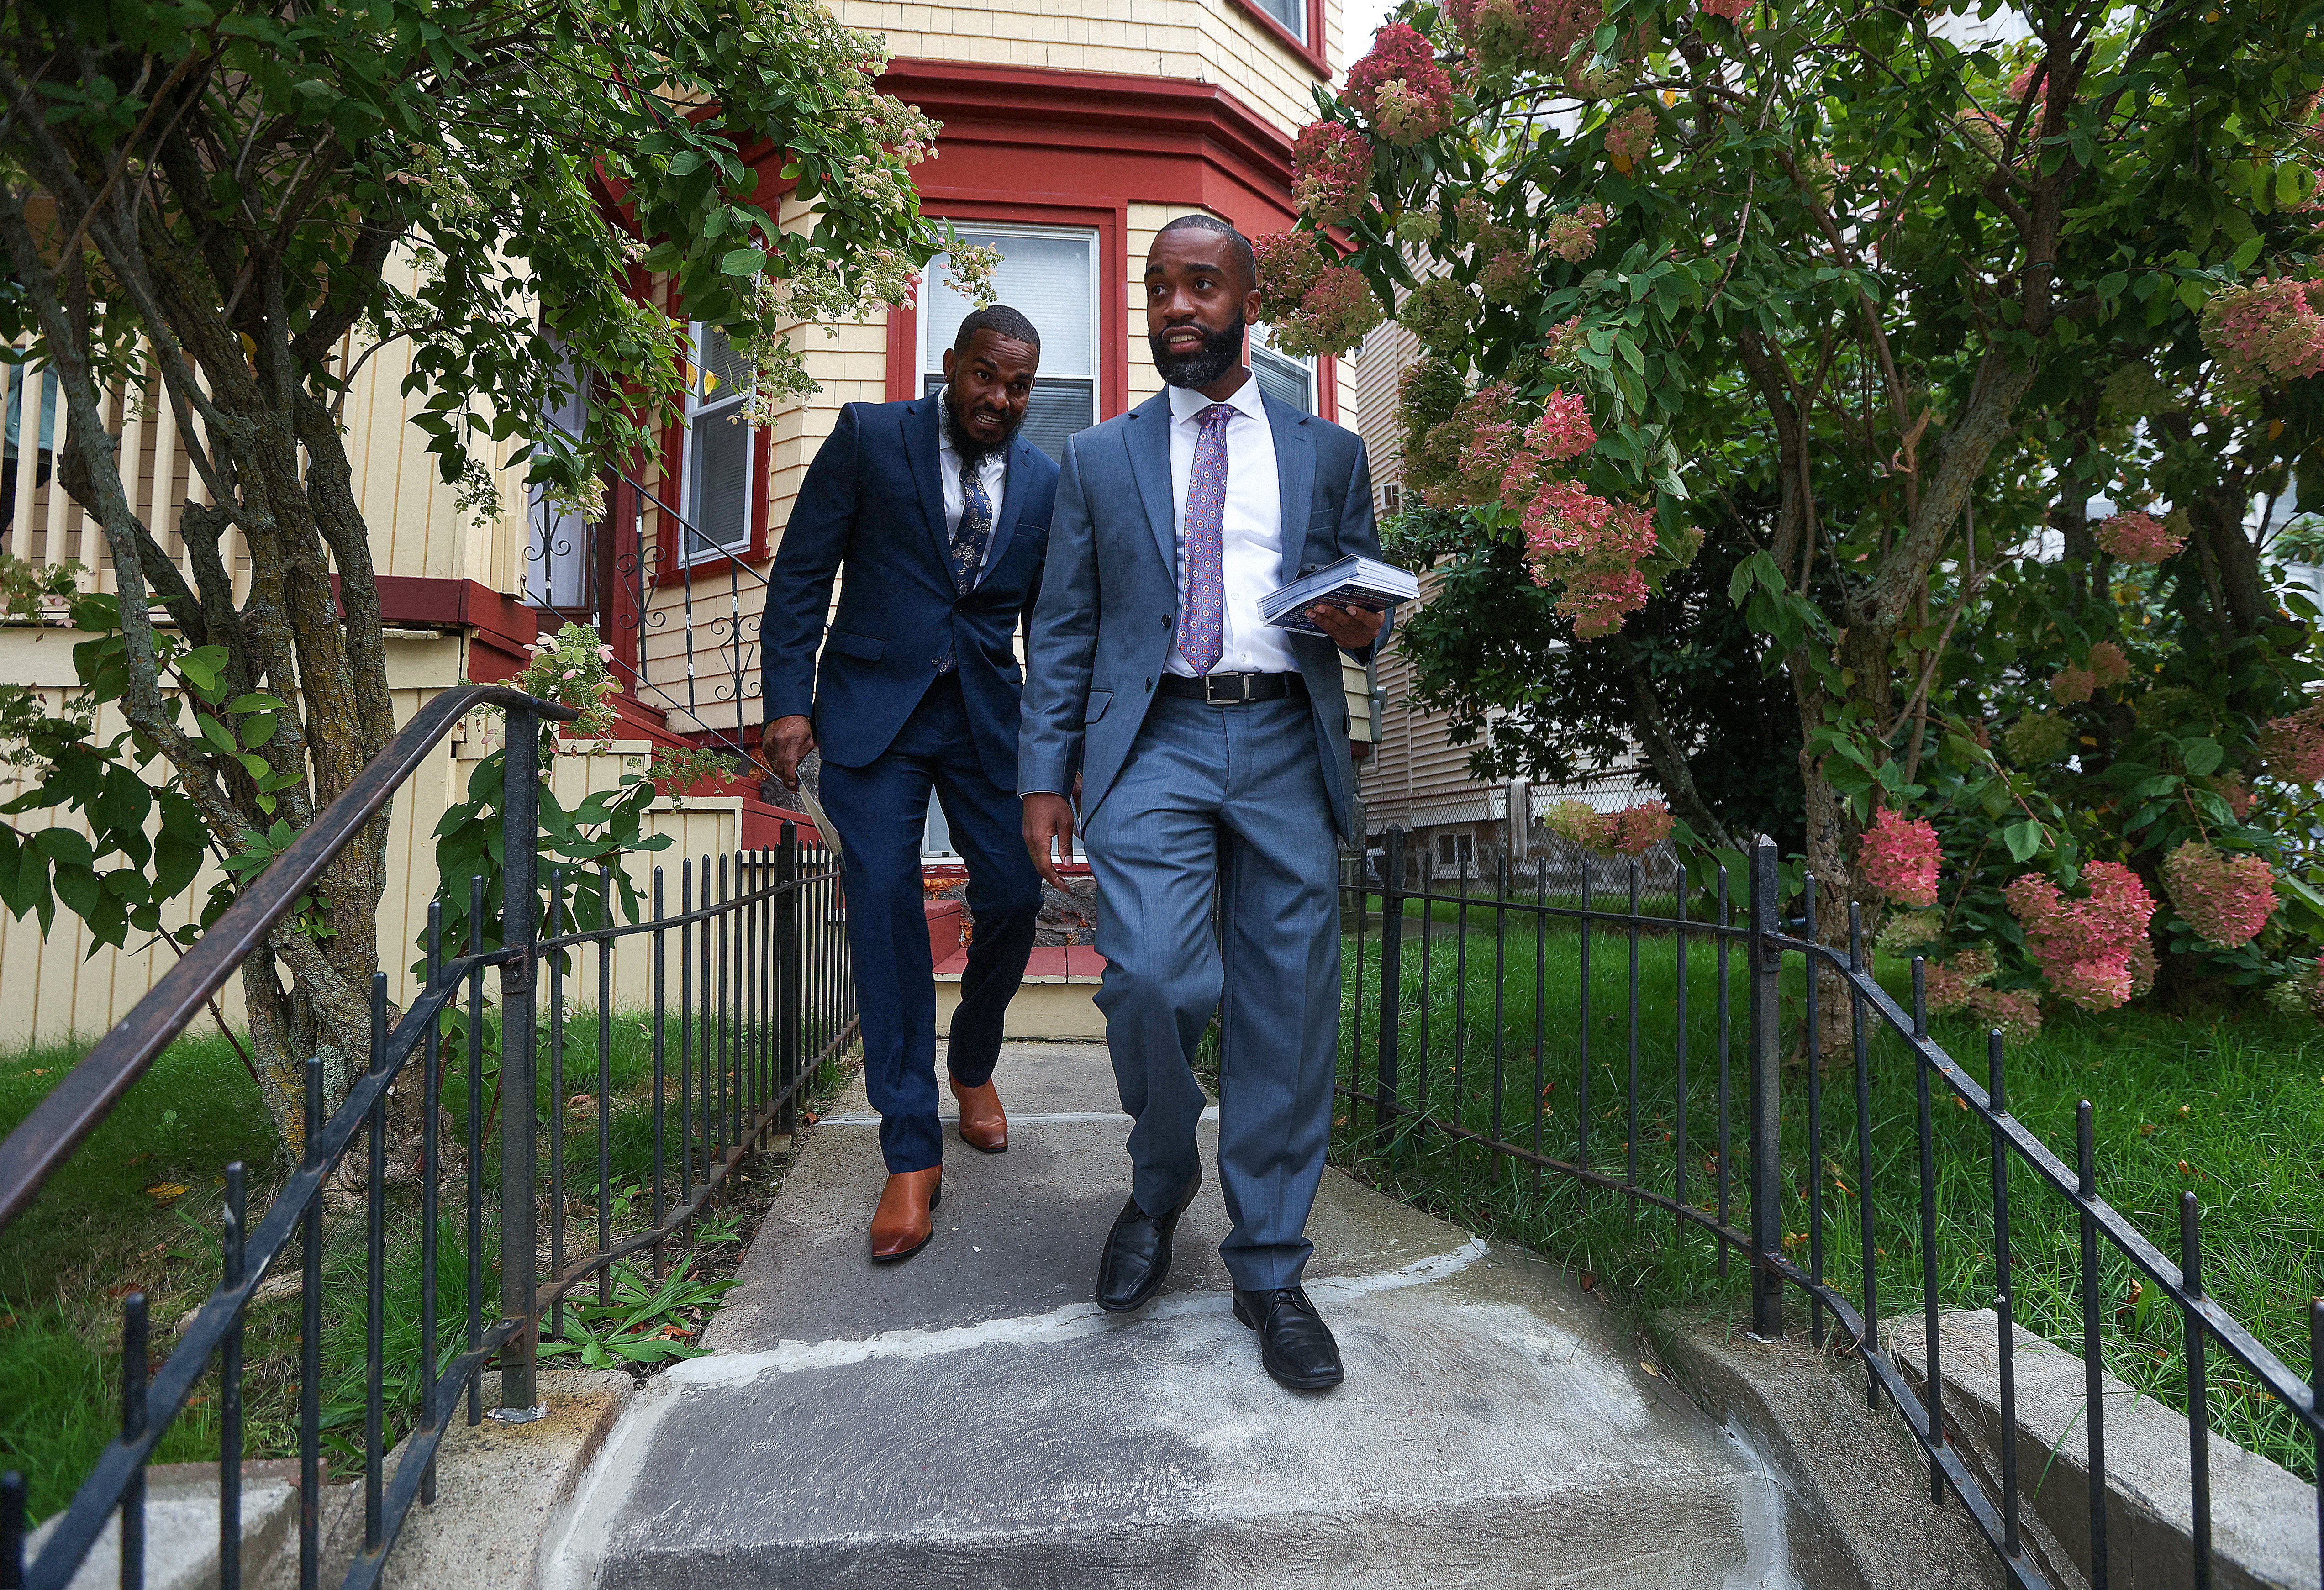 Brian Worrell, followed by campaign aide Chet Brown, knocked on Dorchester's doors.